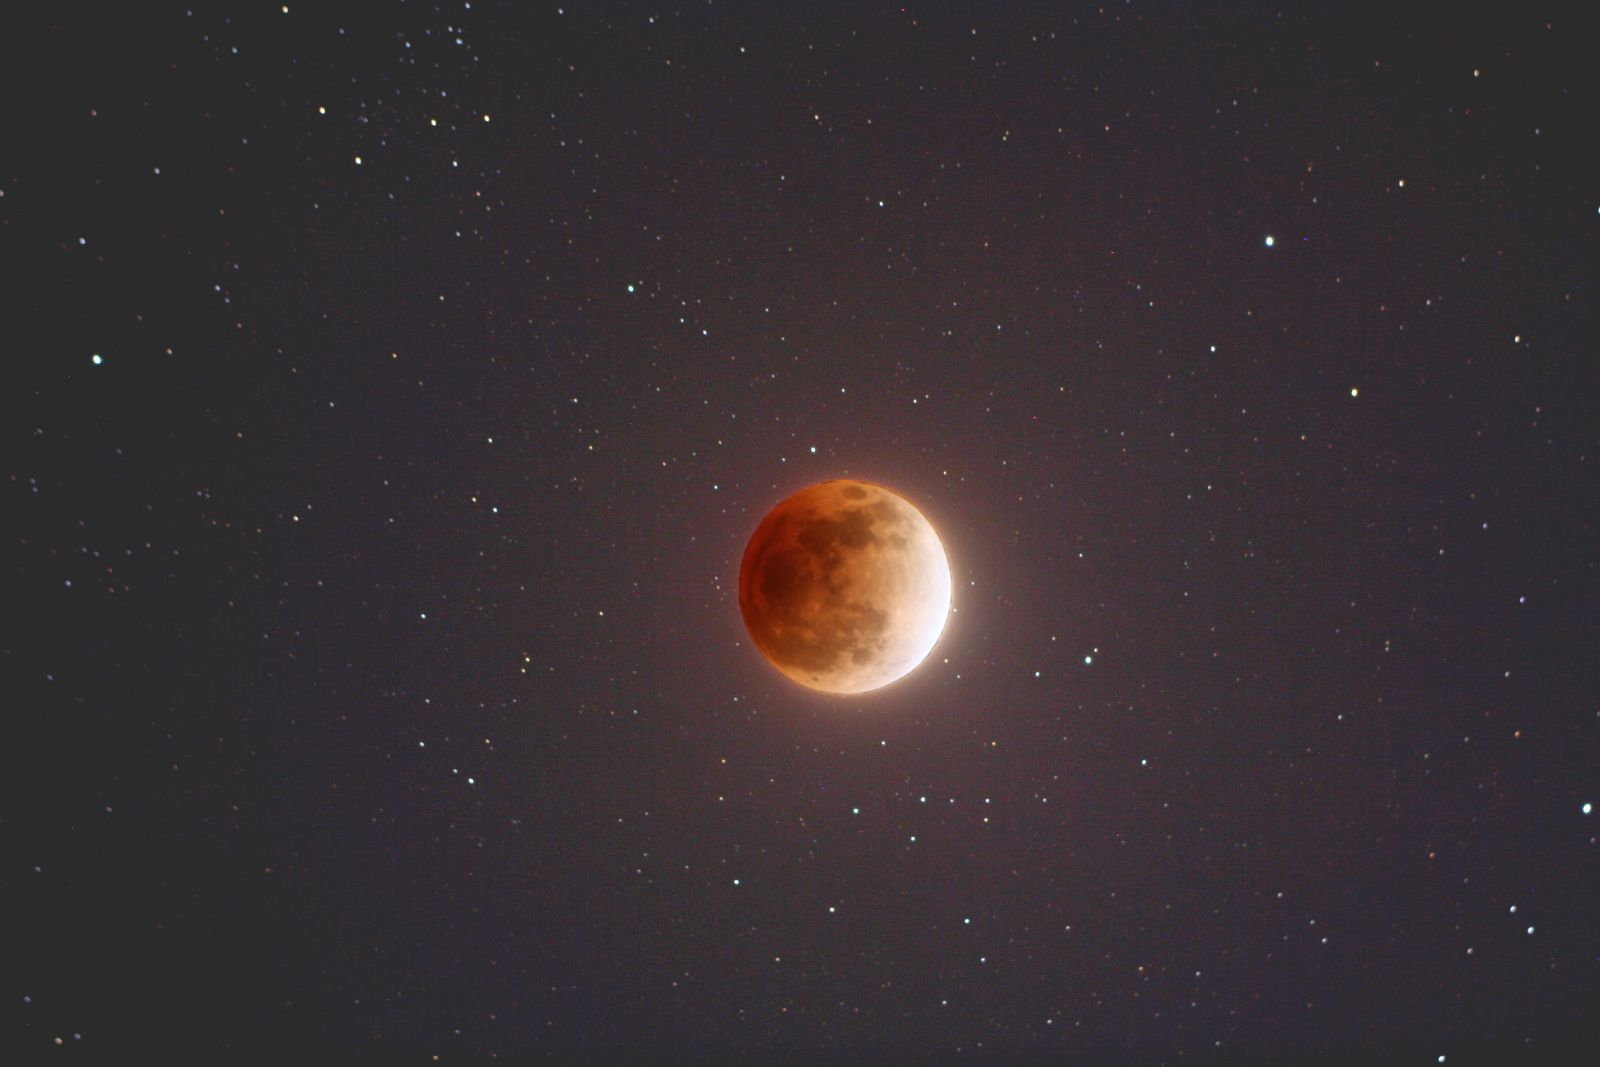 An illustration of a super blue blood moon from